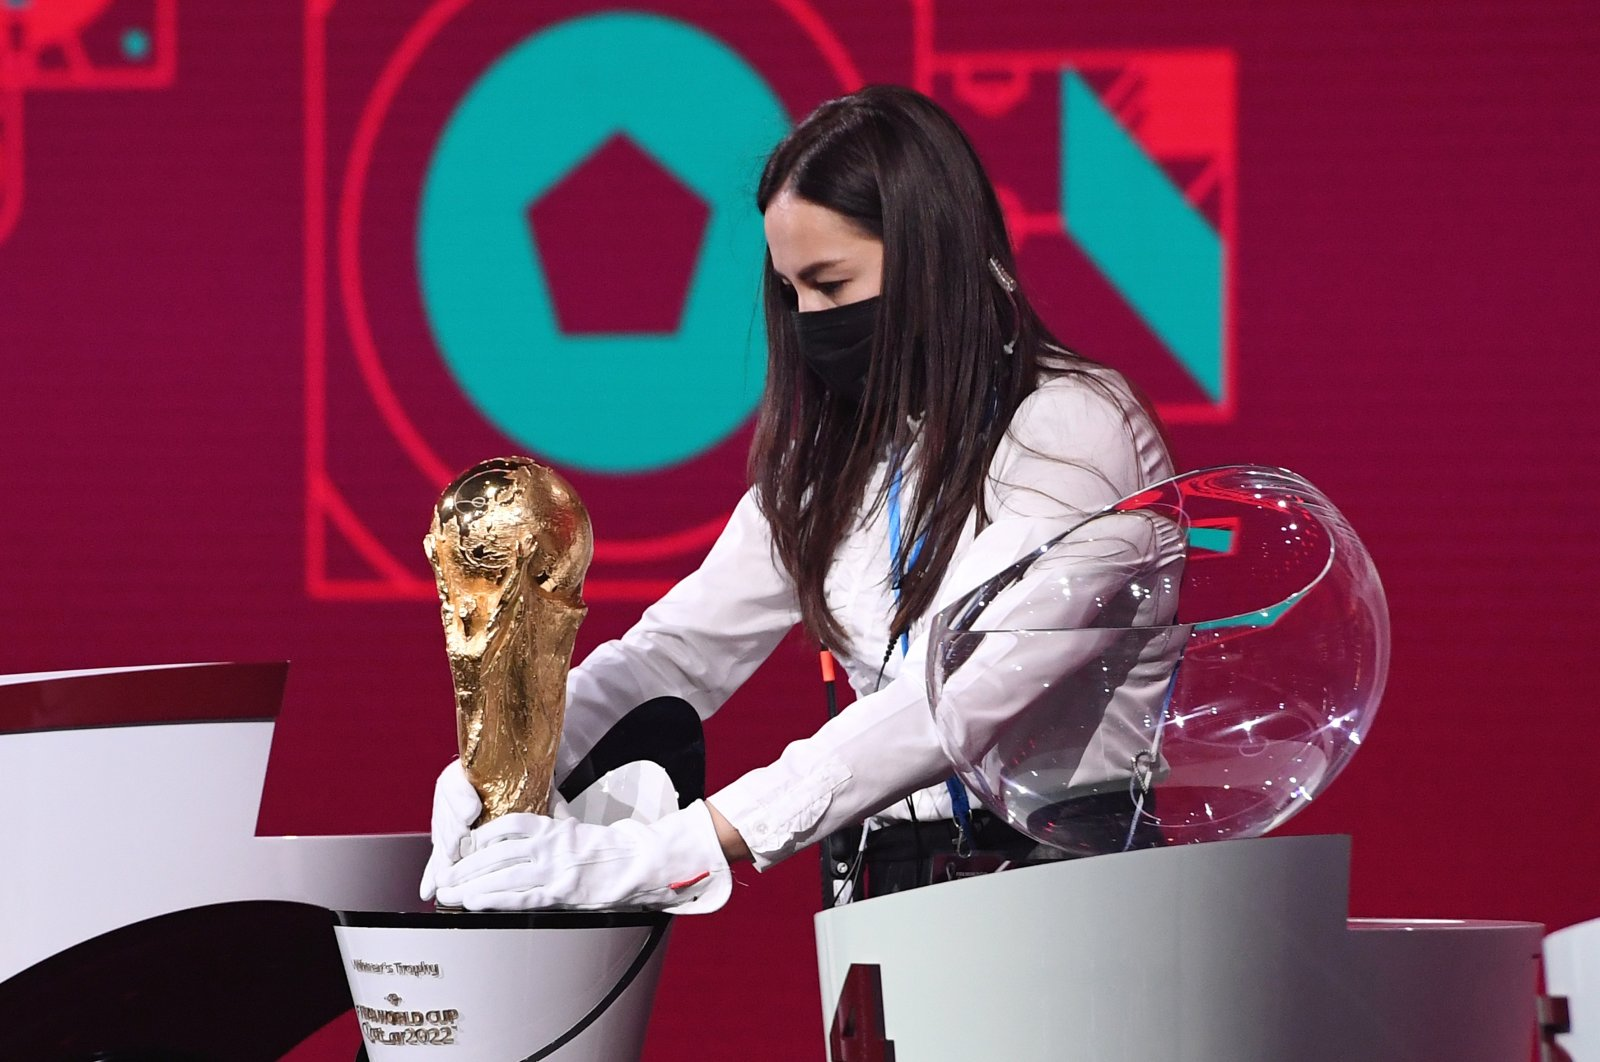 An event official carefully positions the World Cup trophy during the draw in Zurich, Switzerland, Dec. 7, 2020. (REUTERS PHOTO)